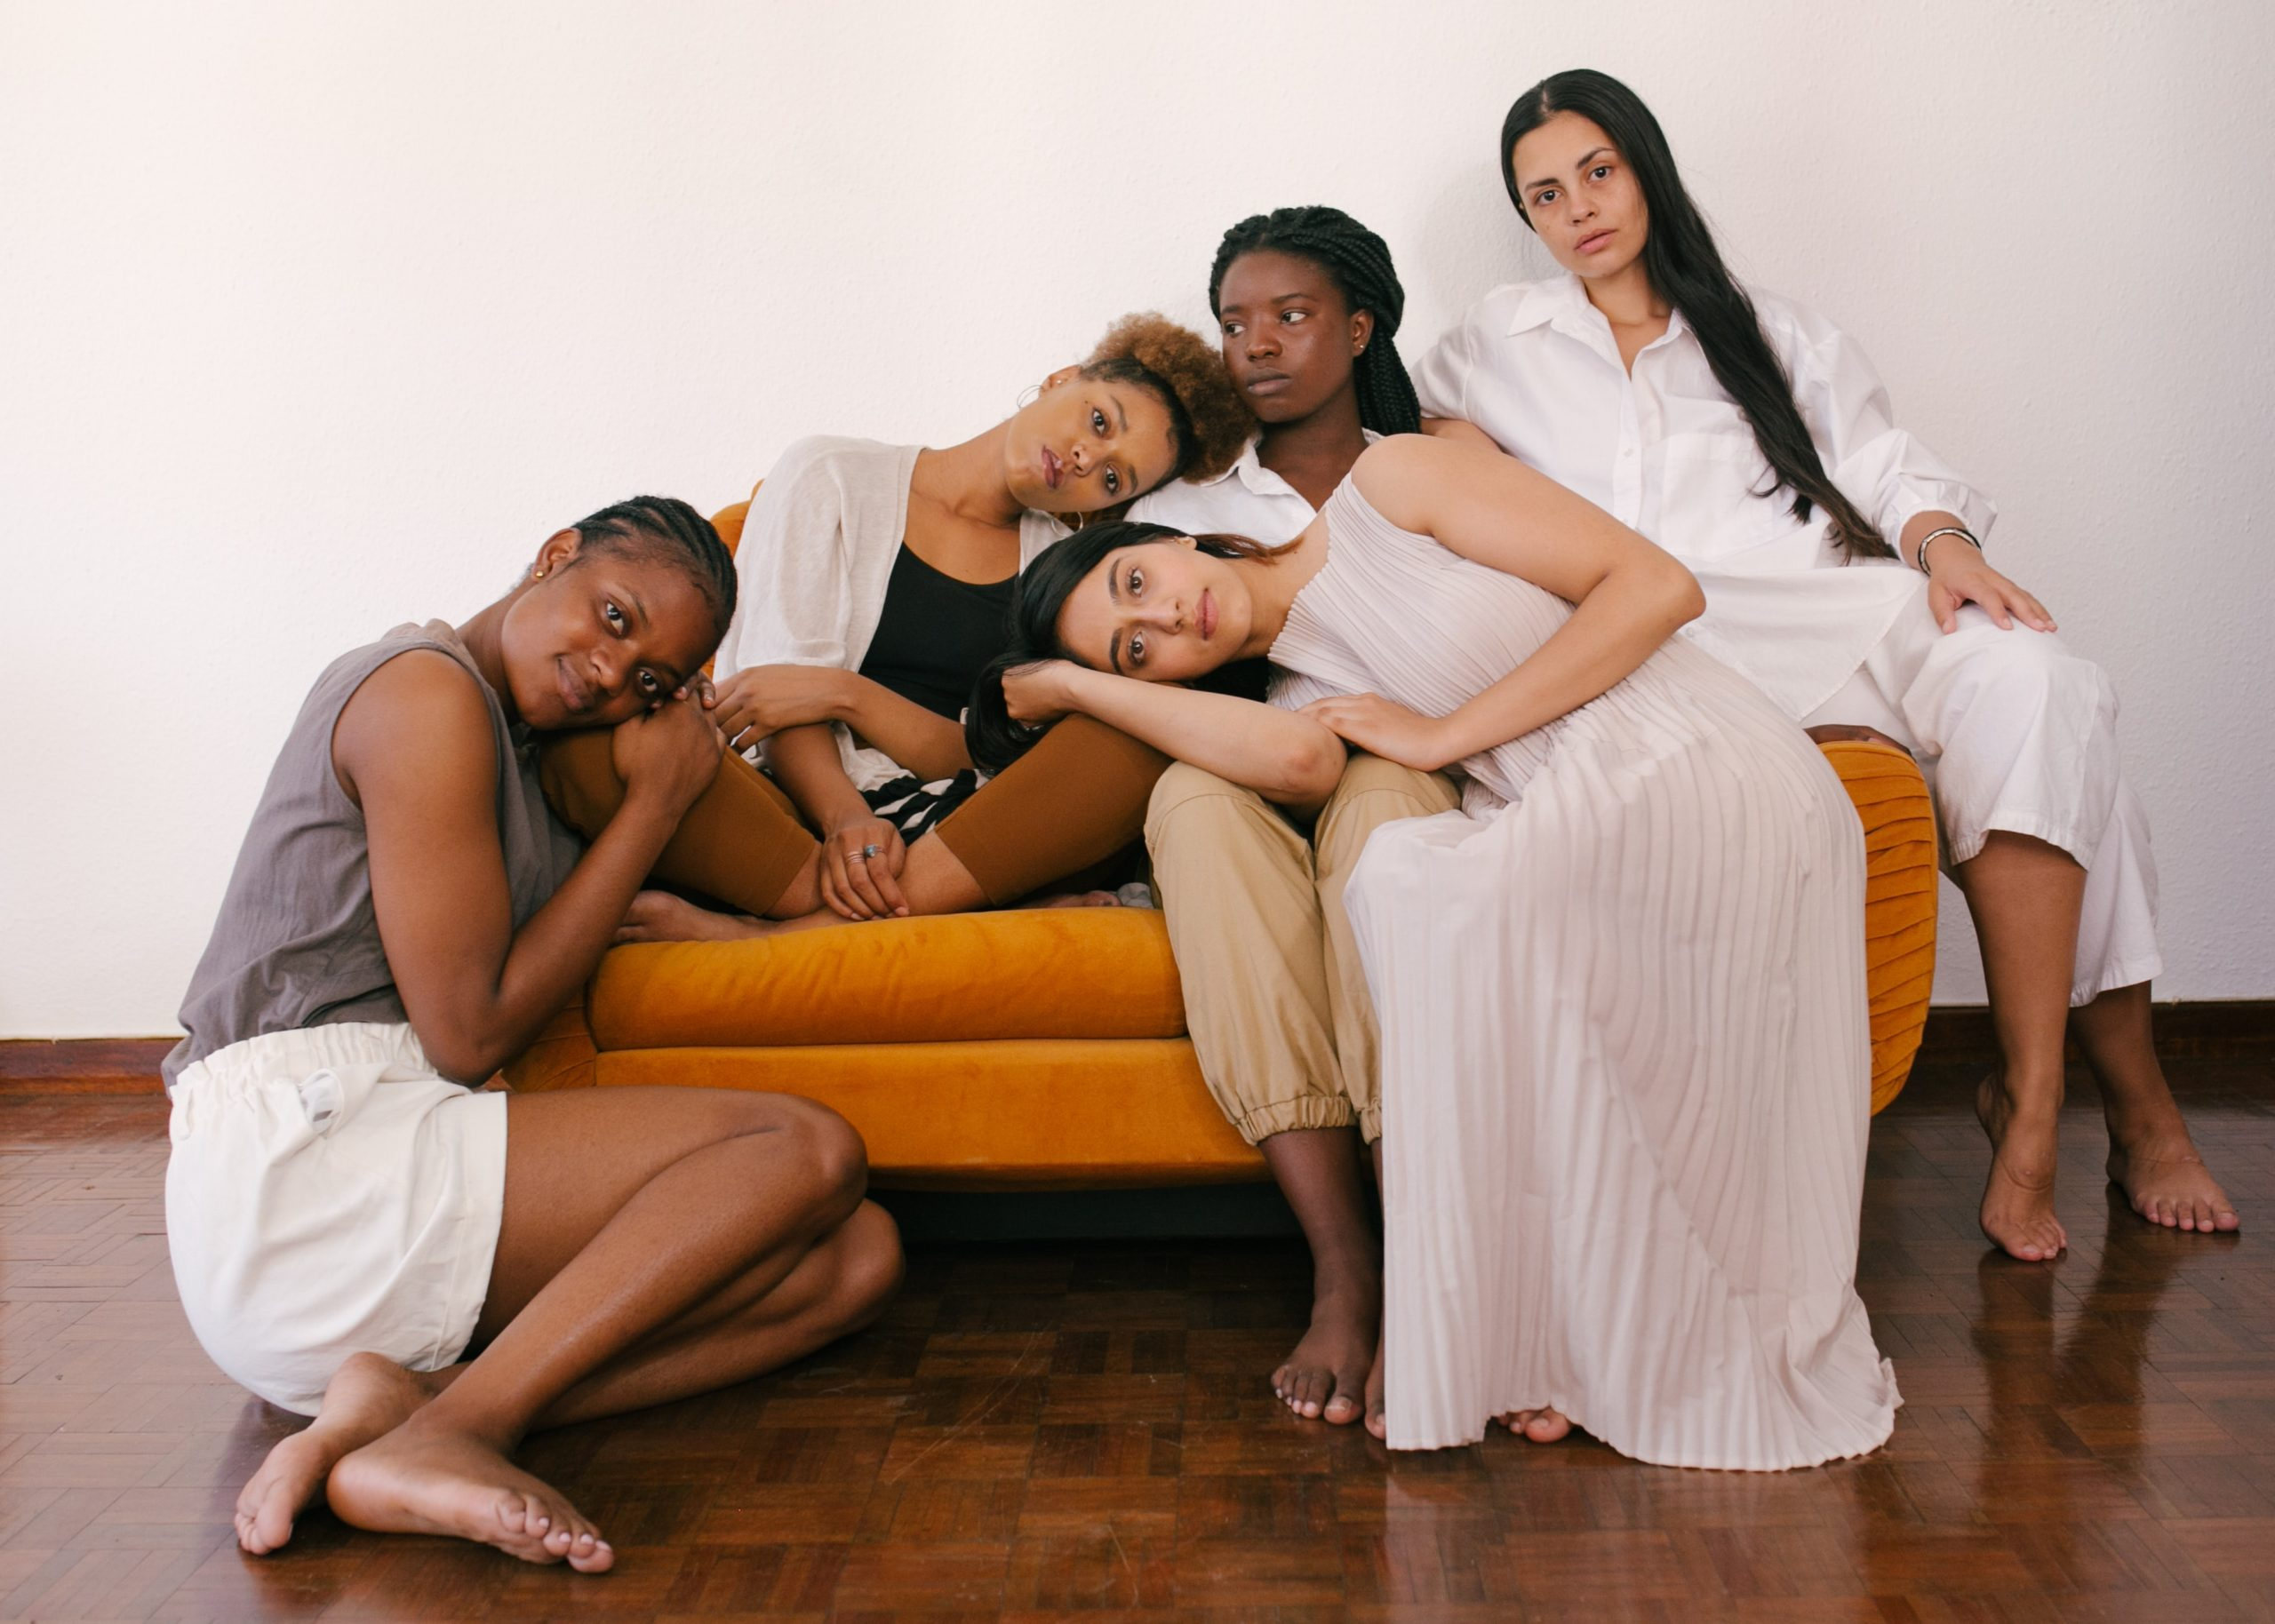 A group of five multiethnic women lounging on a couch